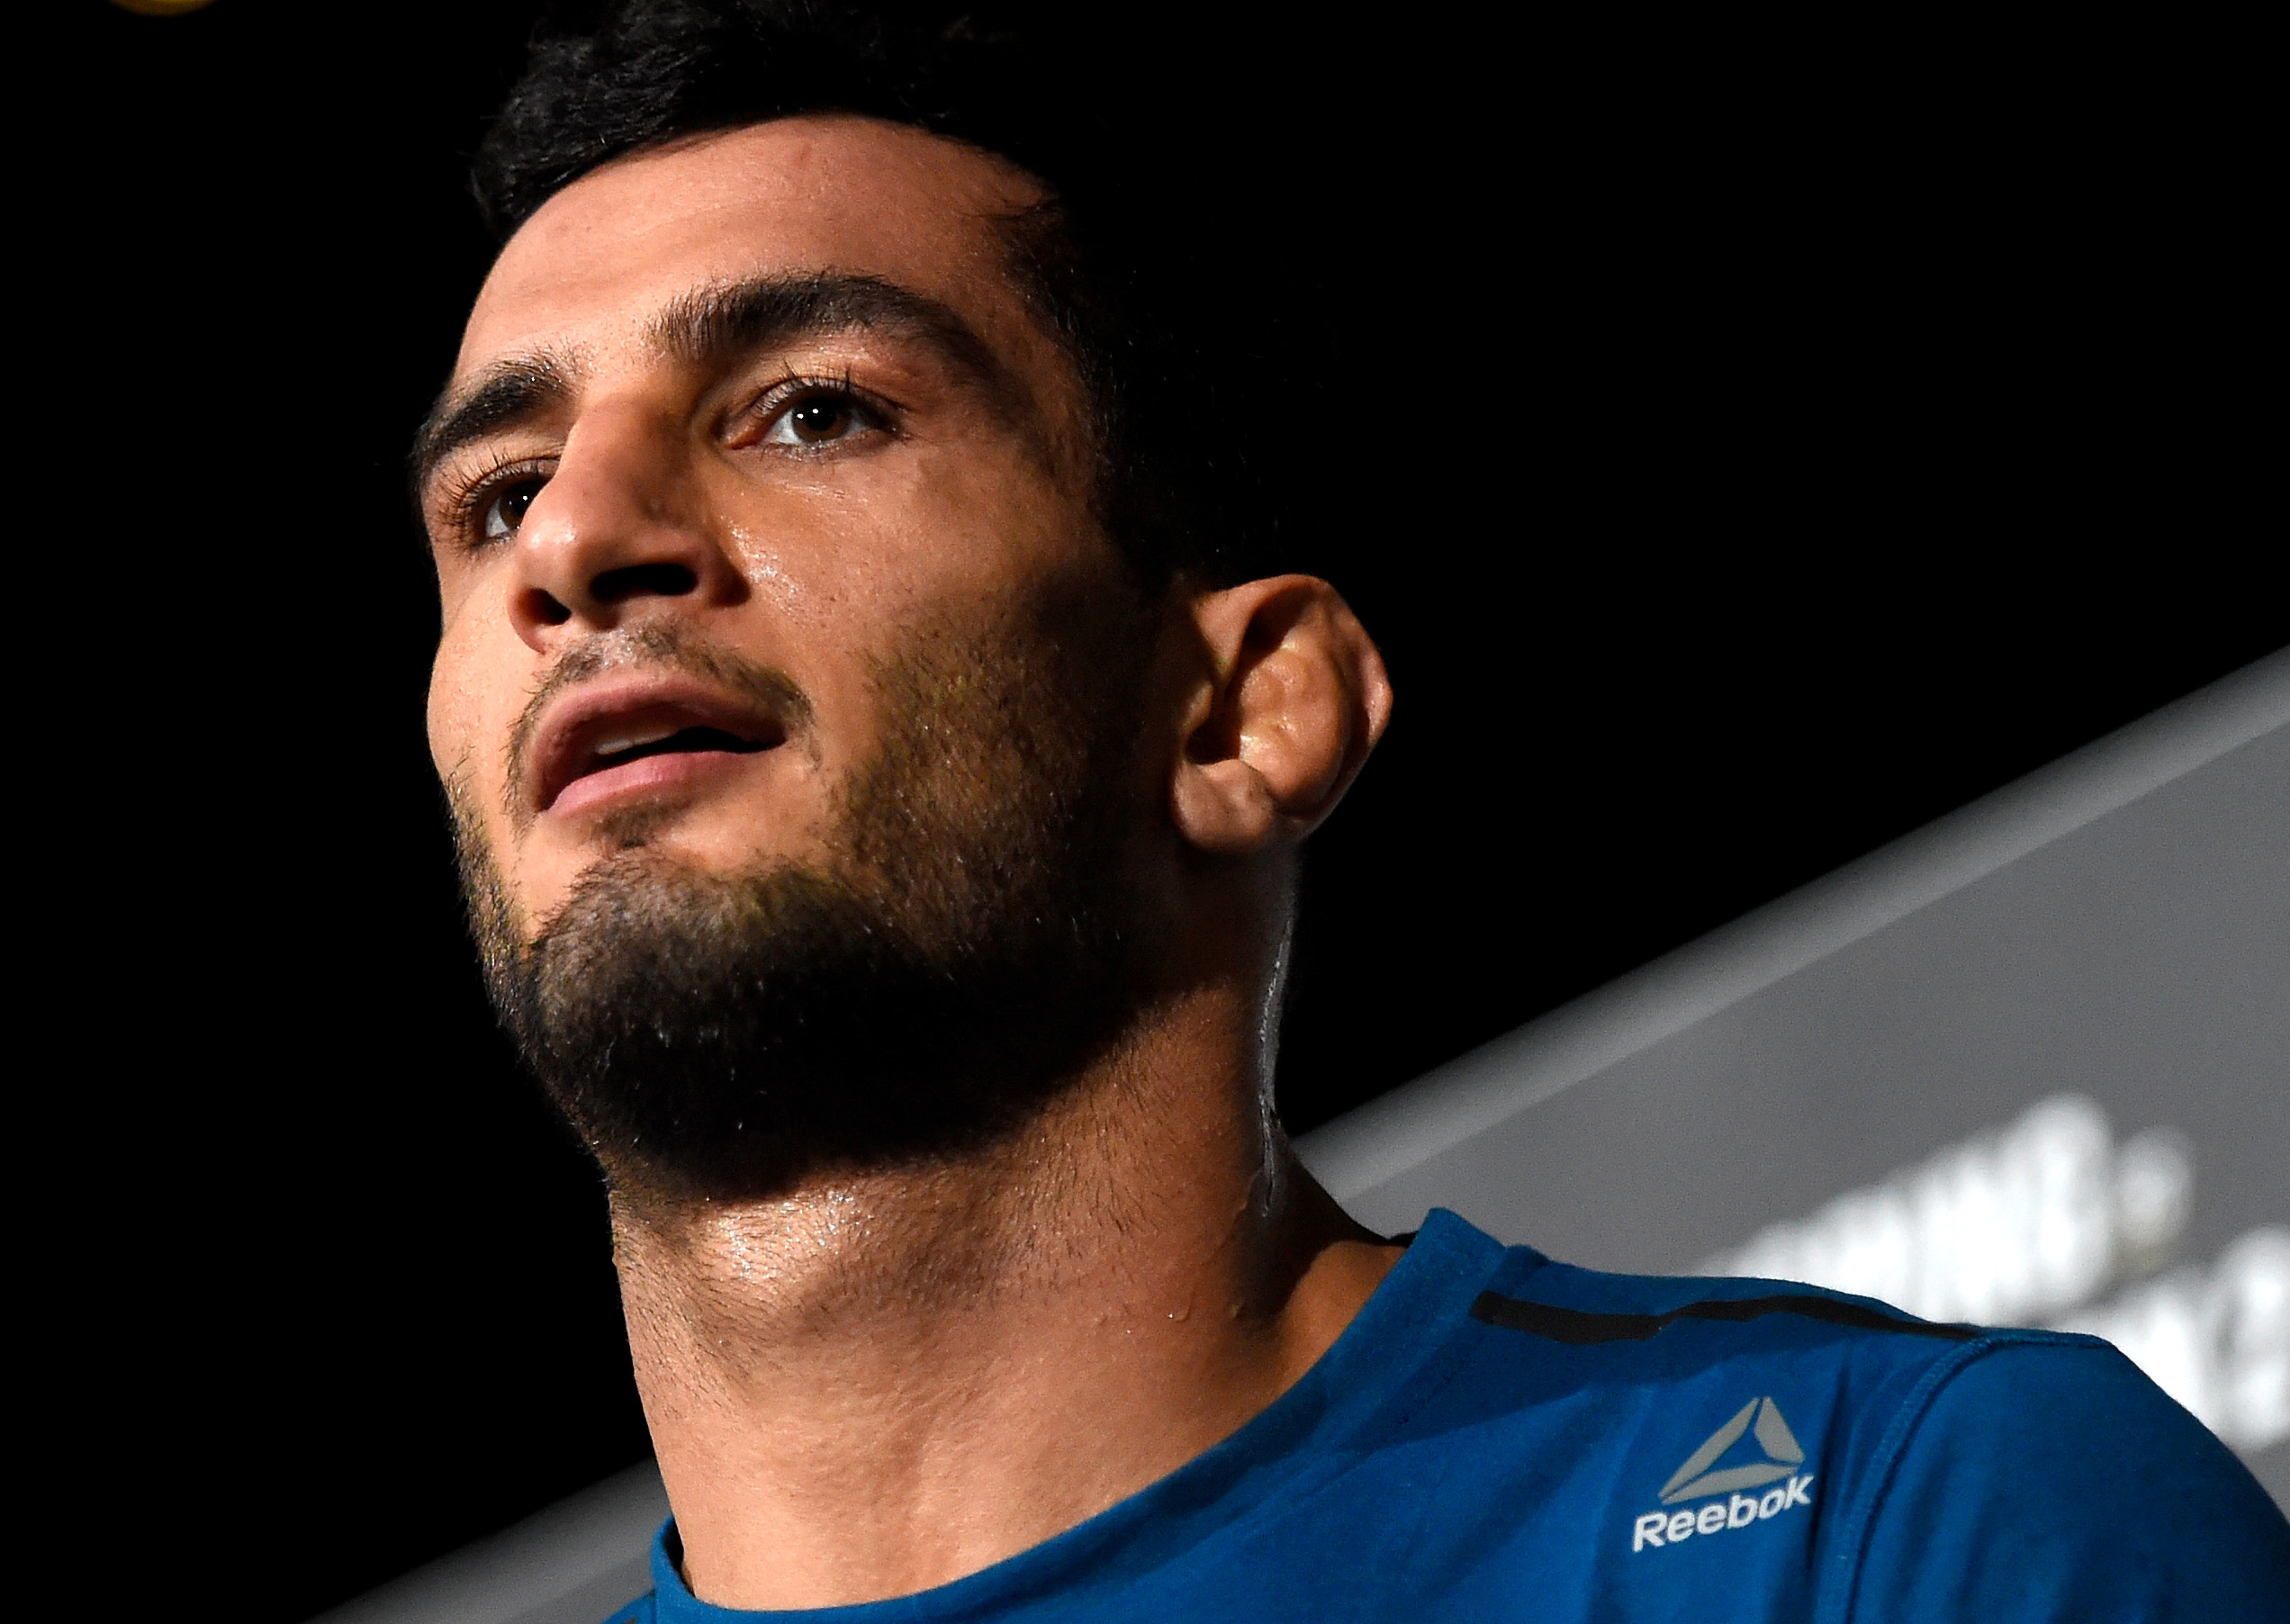 Exclusive: Gegard Mousasi learned from Conor McGregor and Michael Bisping that being loud will get you a title shot